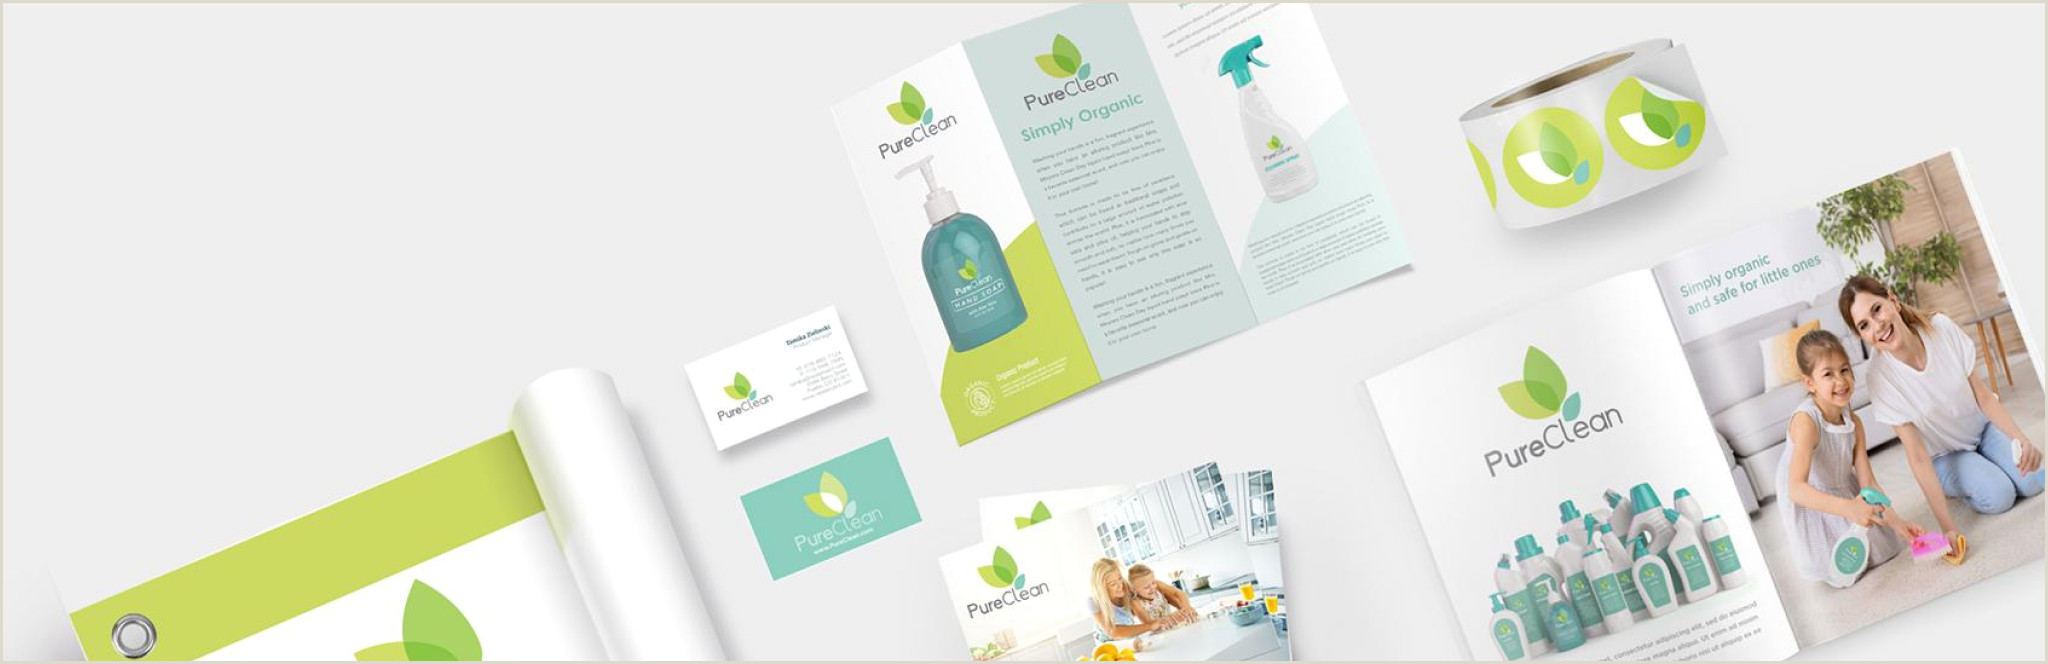 Best Way To Print Business Cards Printplace High Quality Line Printing Services